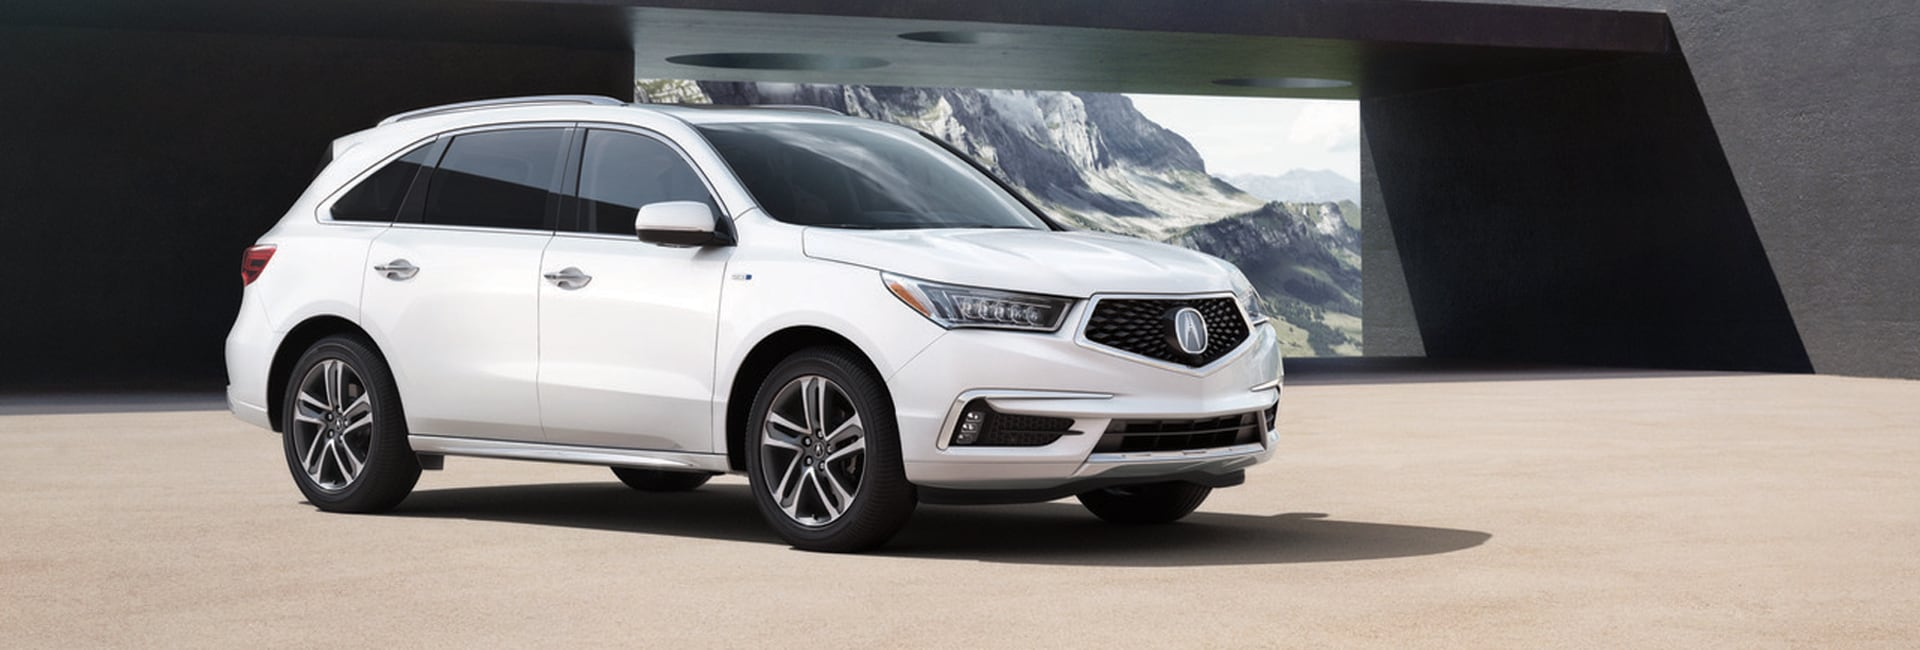 2017 Acura MDX Exterior Features